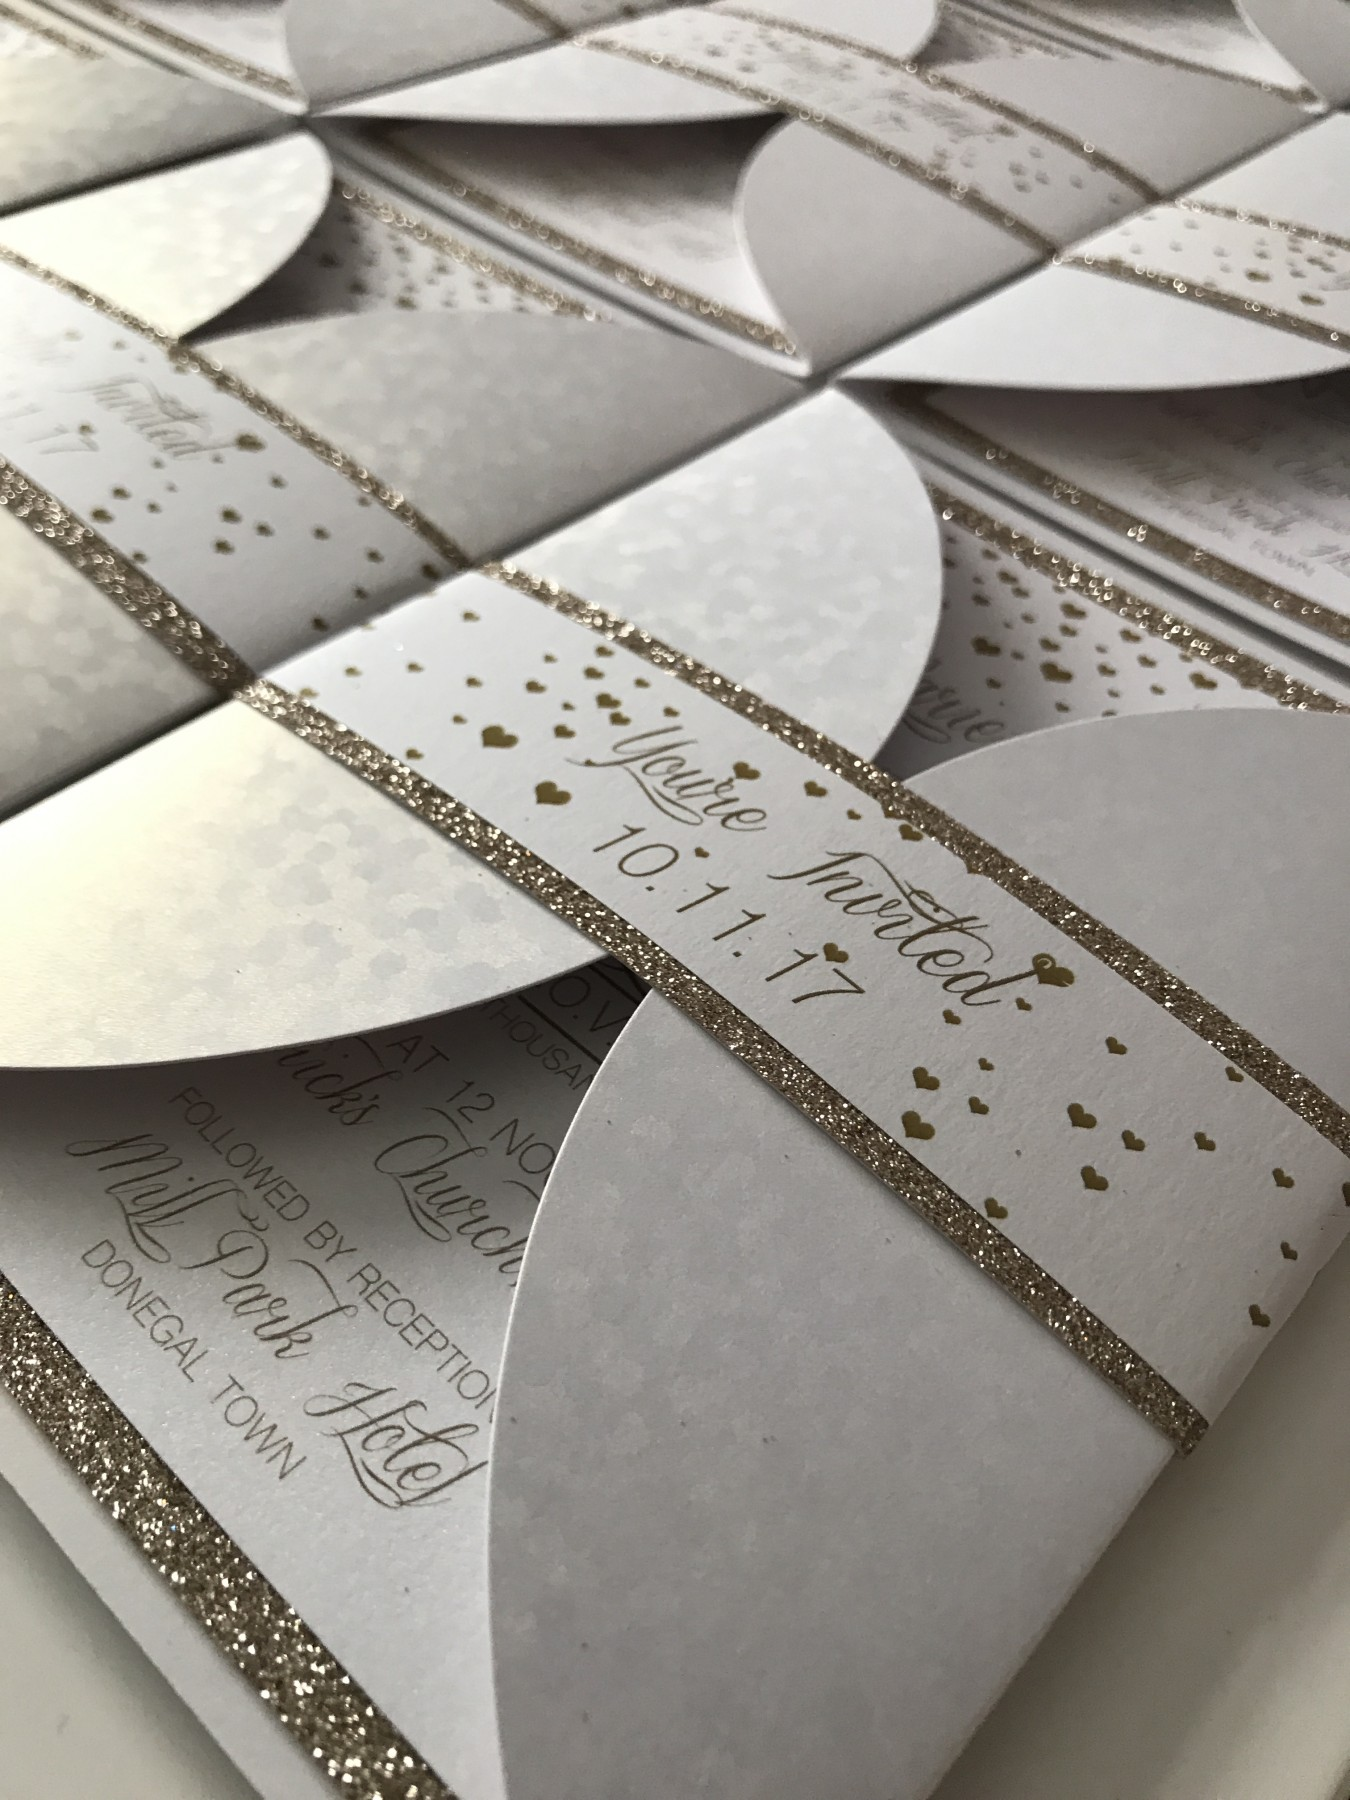 bespoke beautiful wedding invite recycle rusty rustick invite pocket wedding invitation with hot foil designs at Invite Delight with gold glitter card